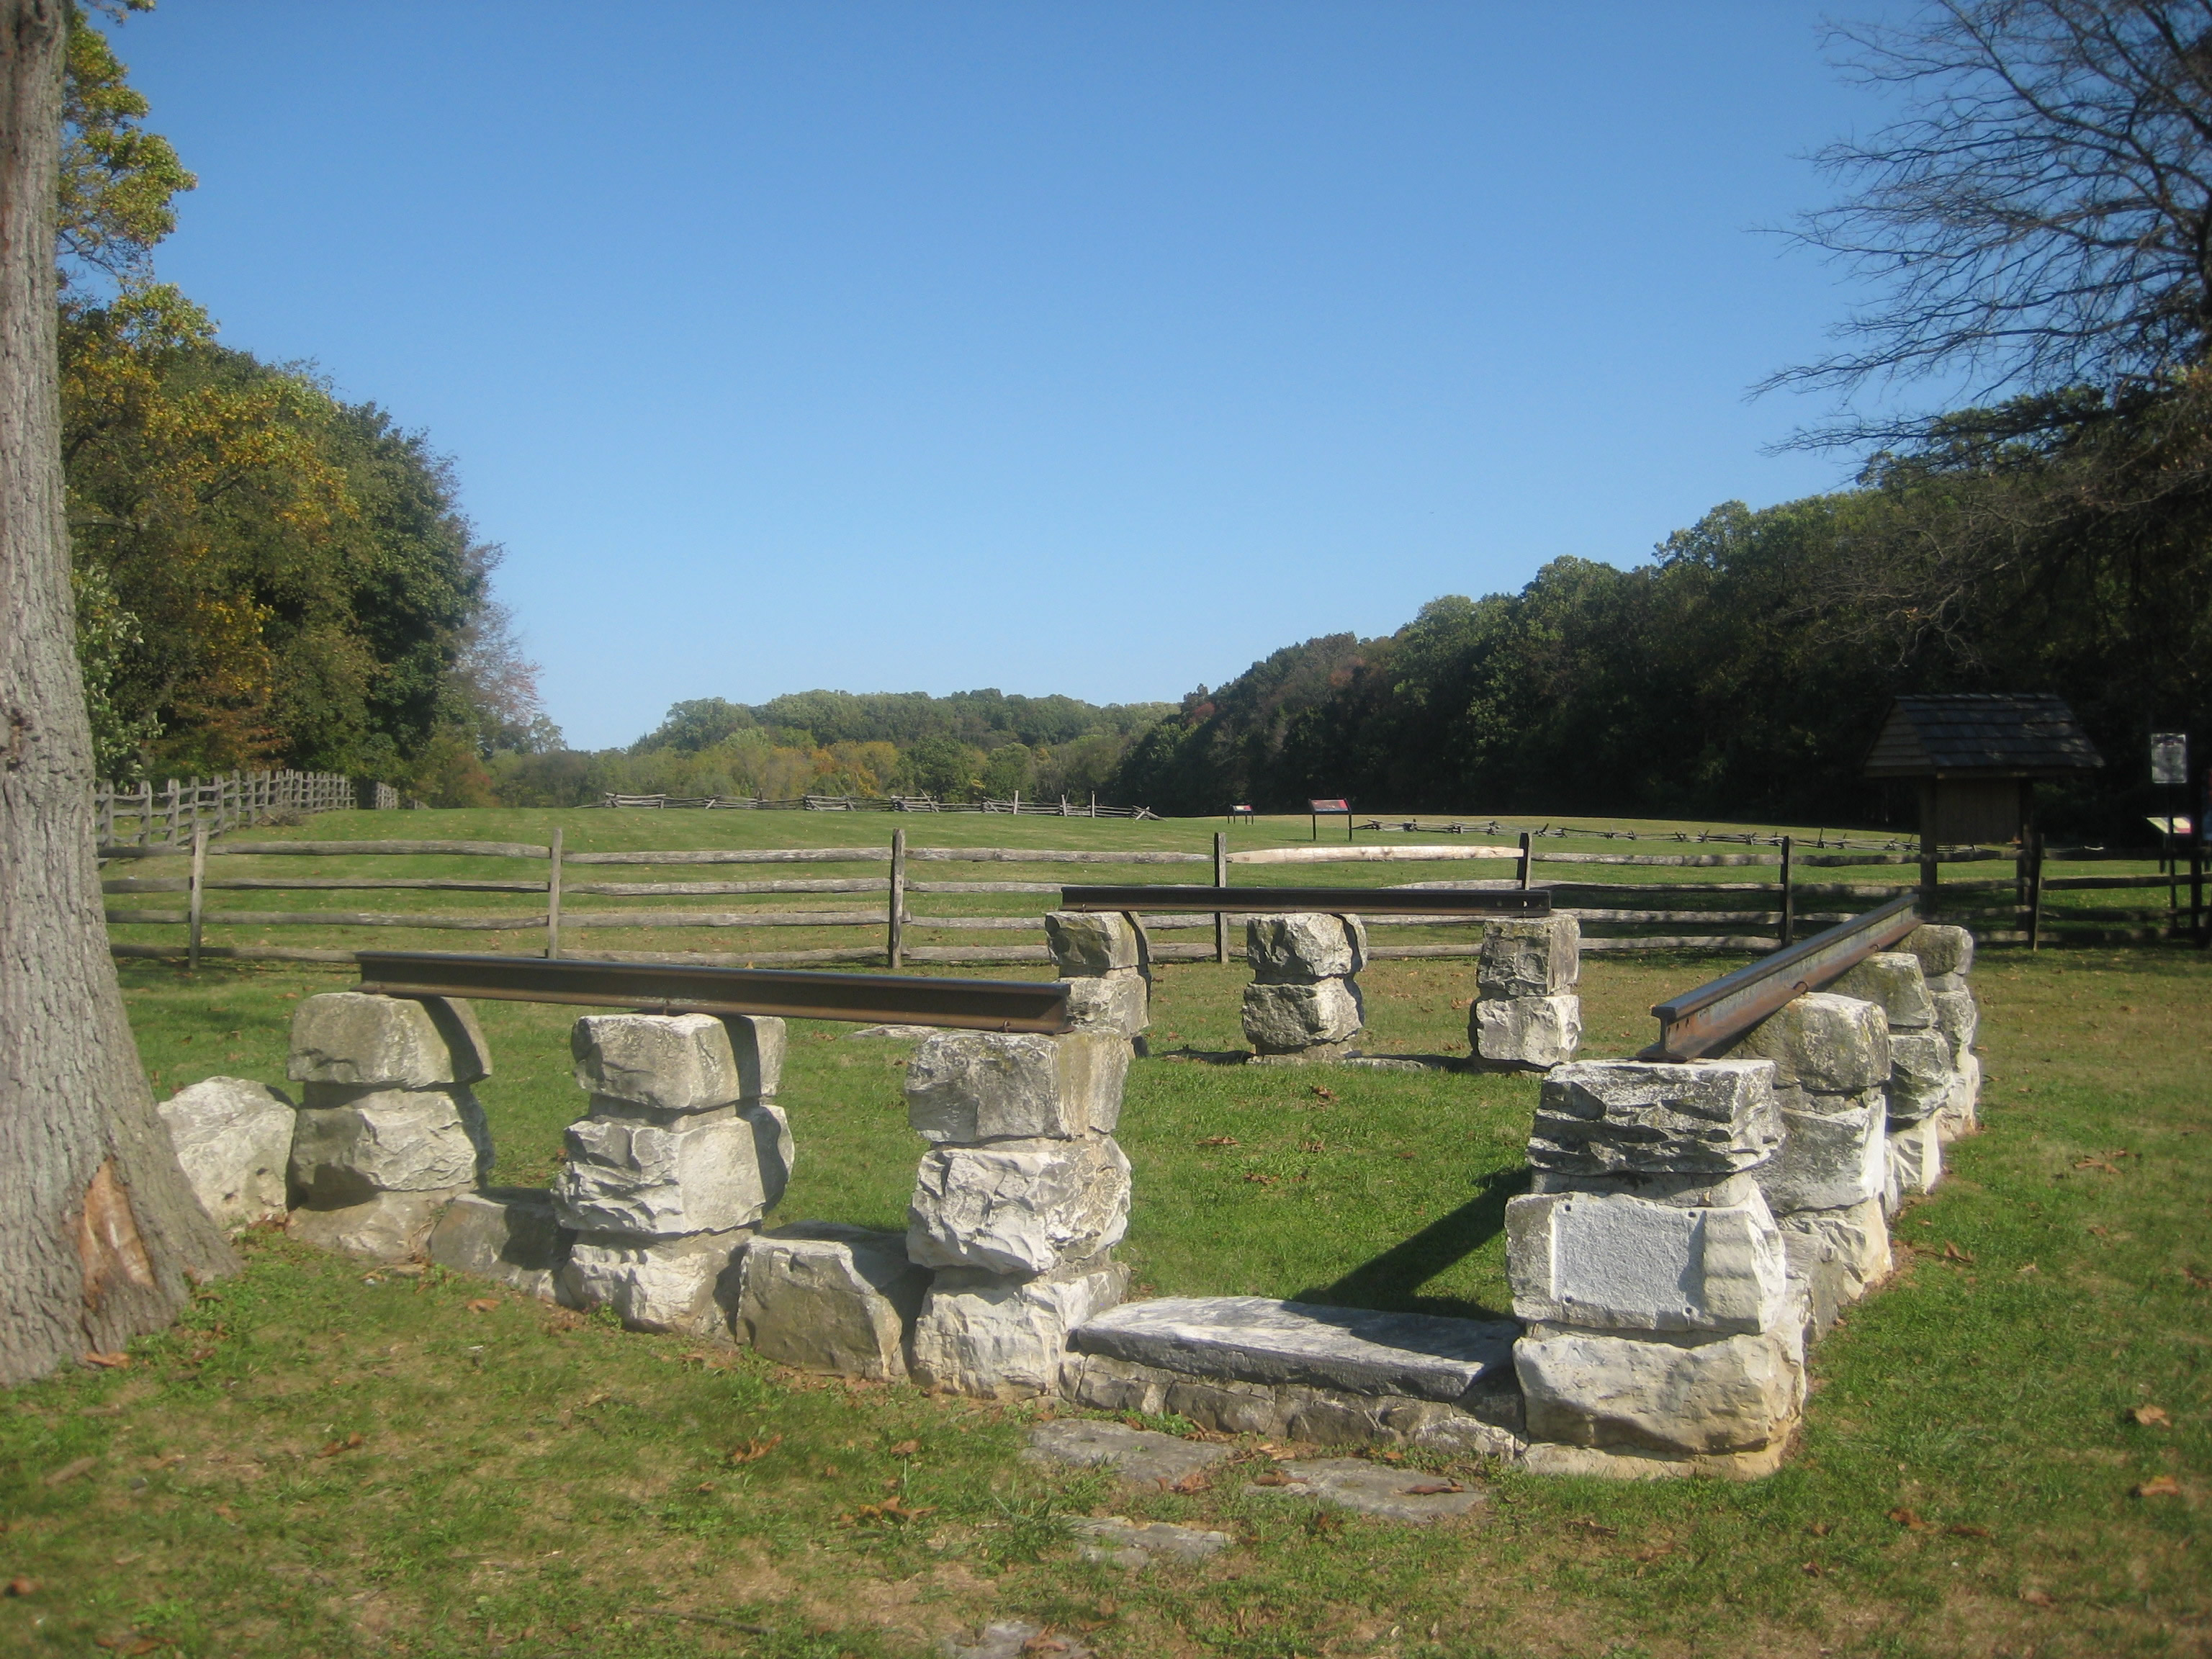 Fences and Structure at Paoli Battlefield